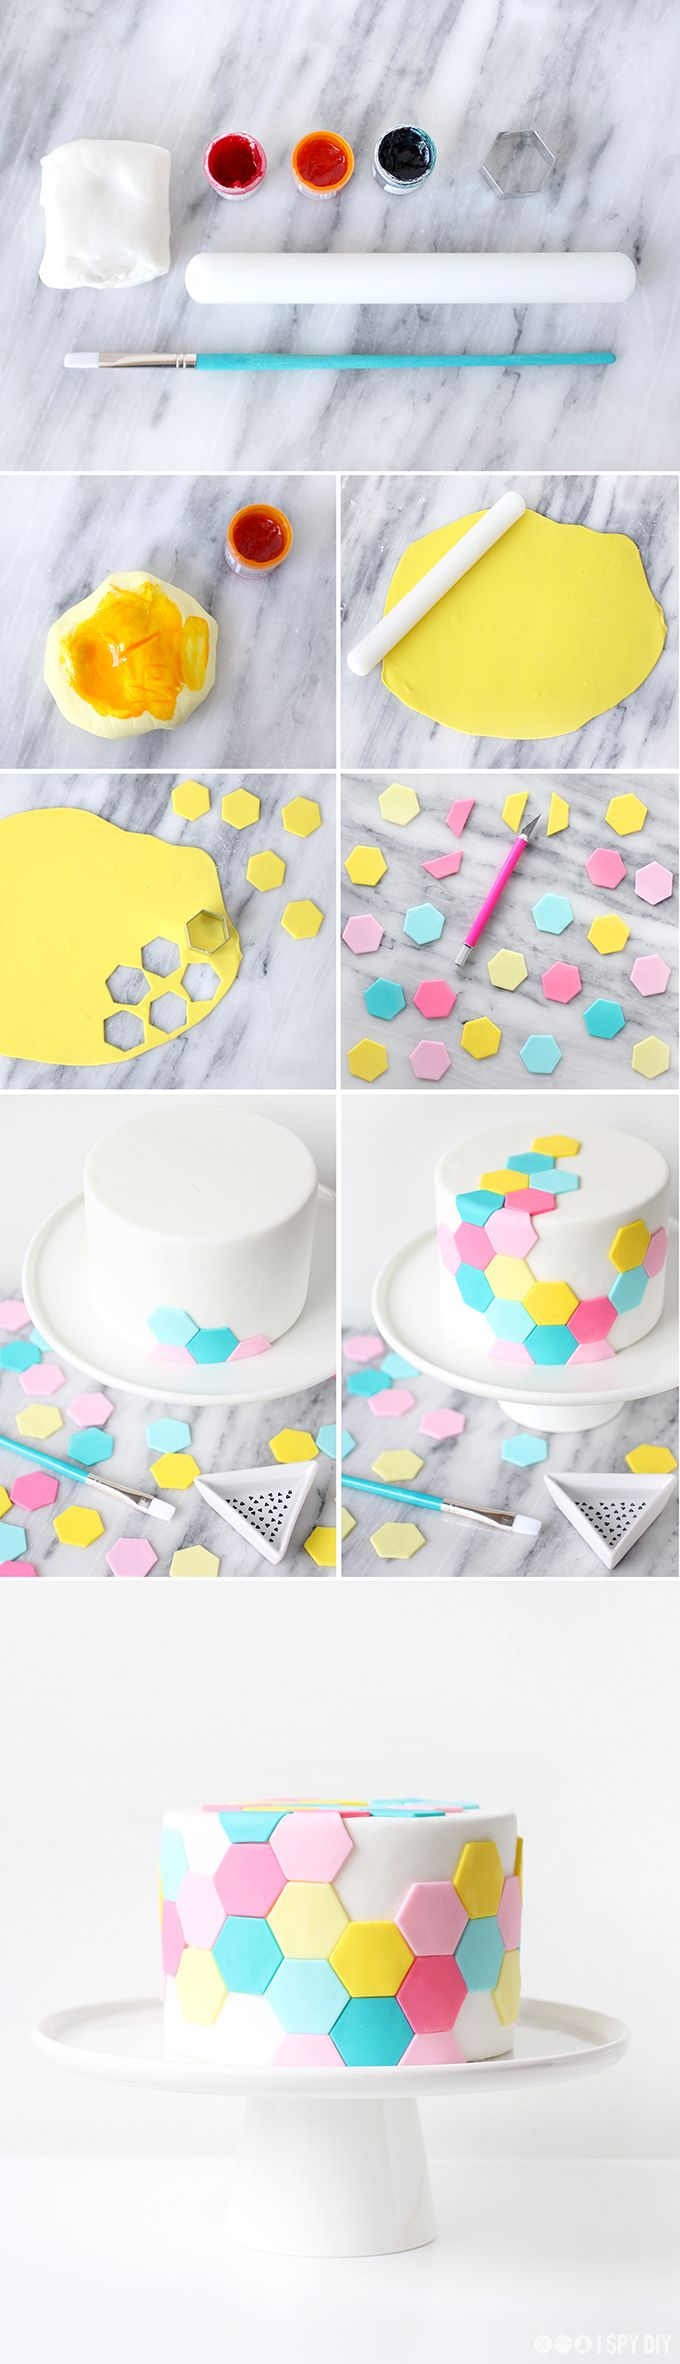 2468 best FOR ALL THINGS CAKE DECORATING images on ...